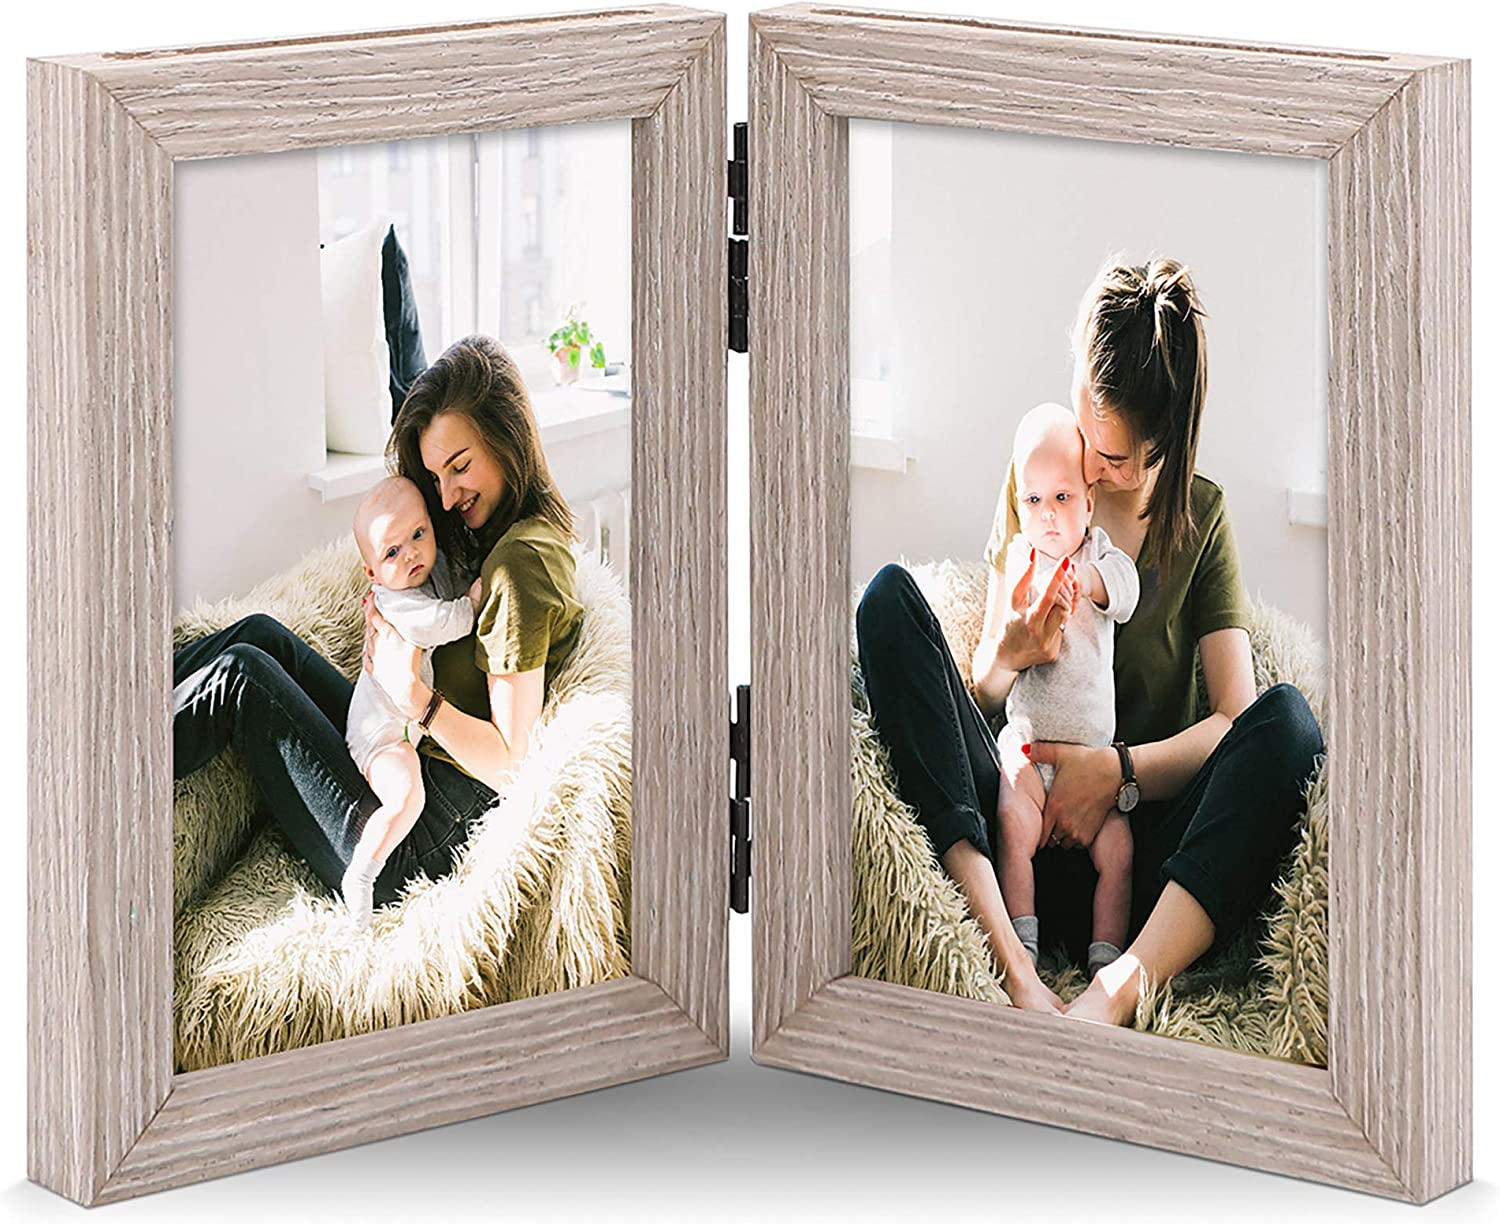 JD Concept Double 4x6 Nature-Wood Hinged Picture Frame, Double Sided Photo Display, Forward or Reverse Folded, Desktop or Wall Mounted